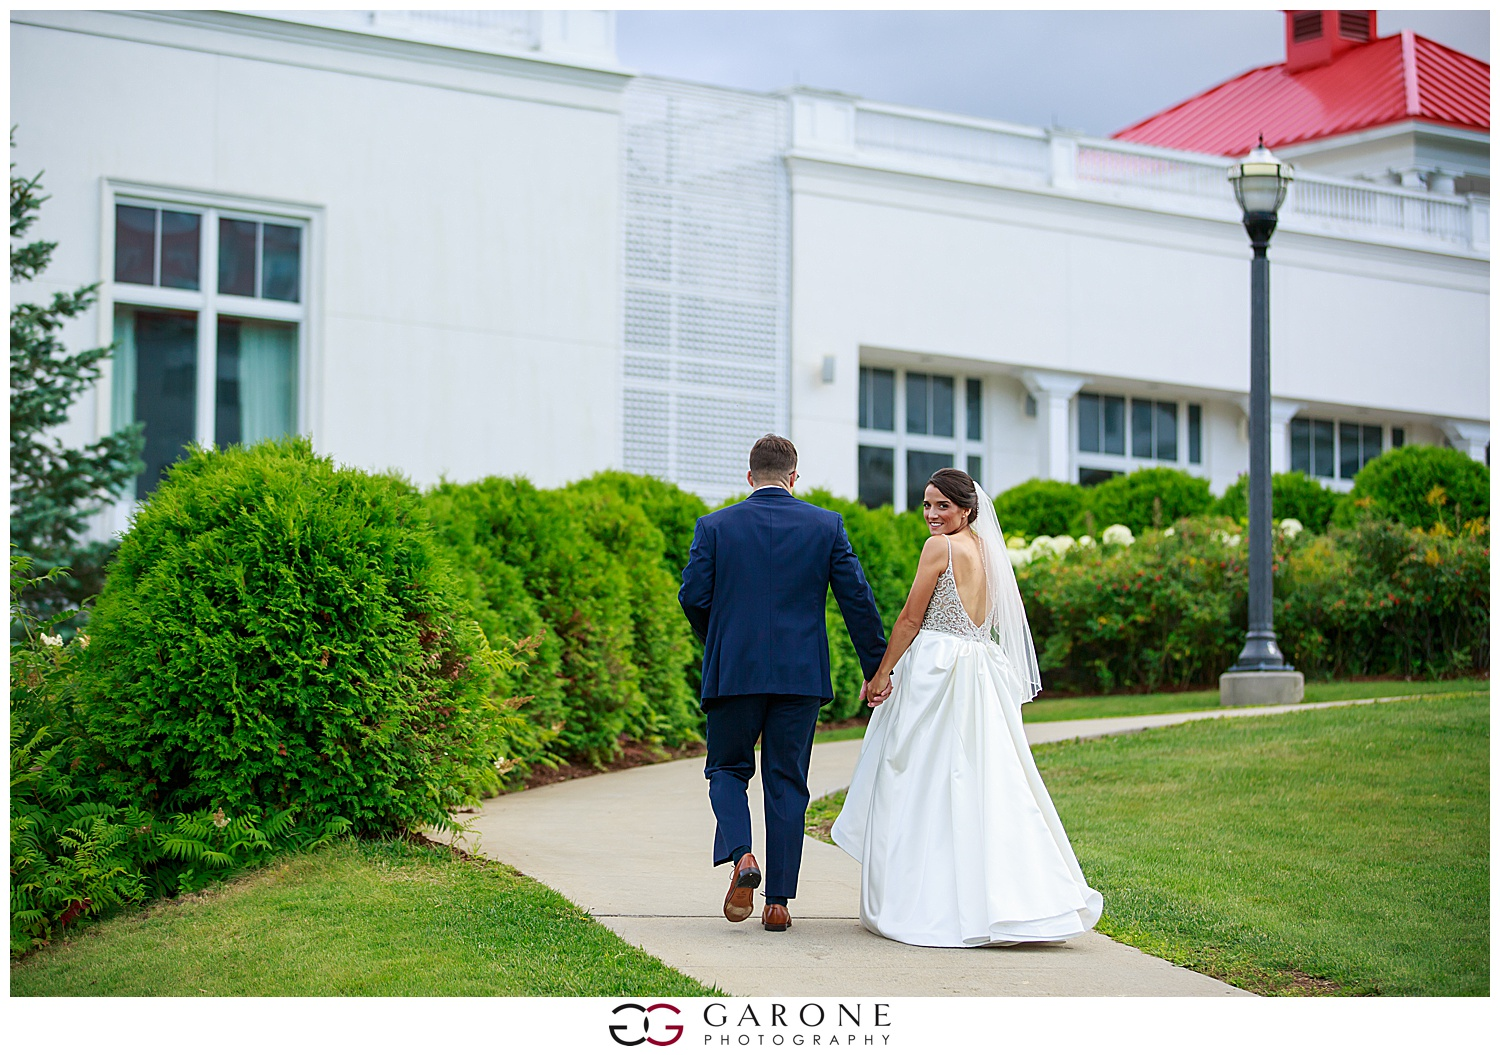 Omni_Mount_Washington_hotel_Wedding_White_Mountain_Wedding_Garone_Photography_0038.jpg